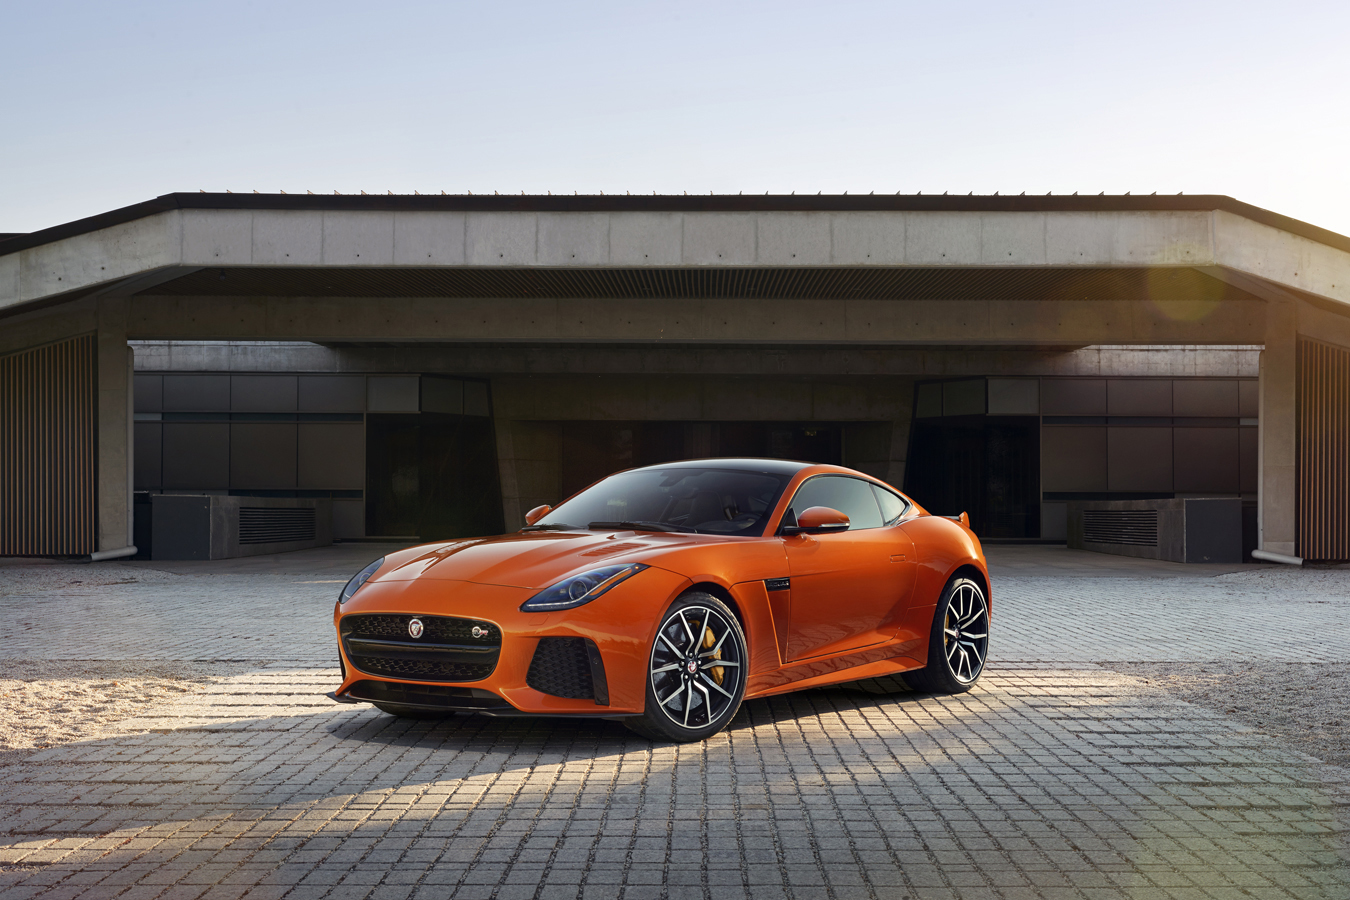 The 2017 F-Type SVR is the Fastest Jag to Date